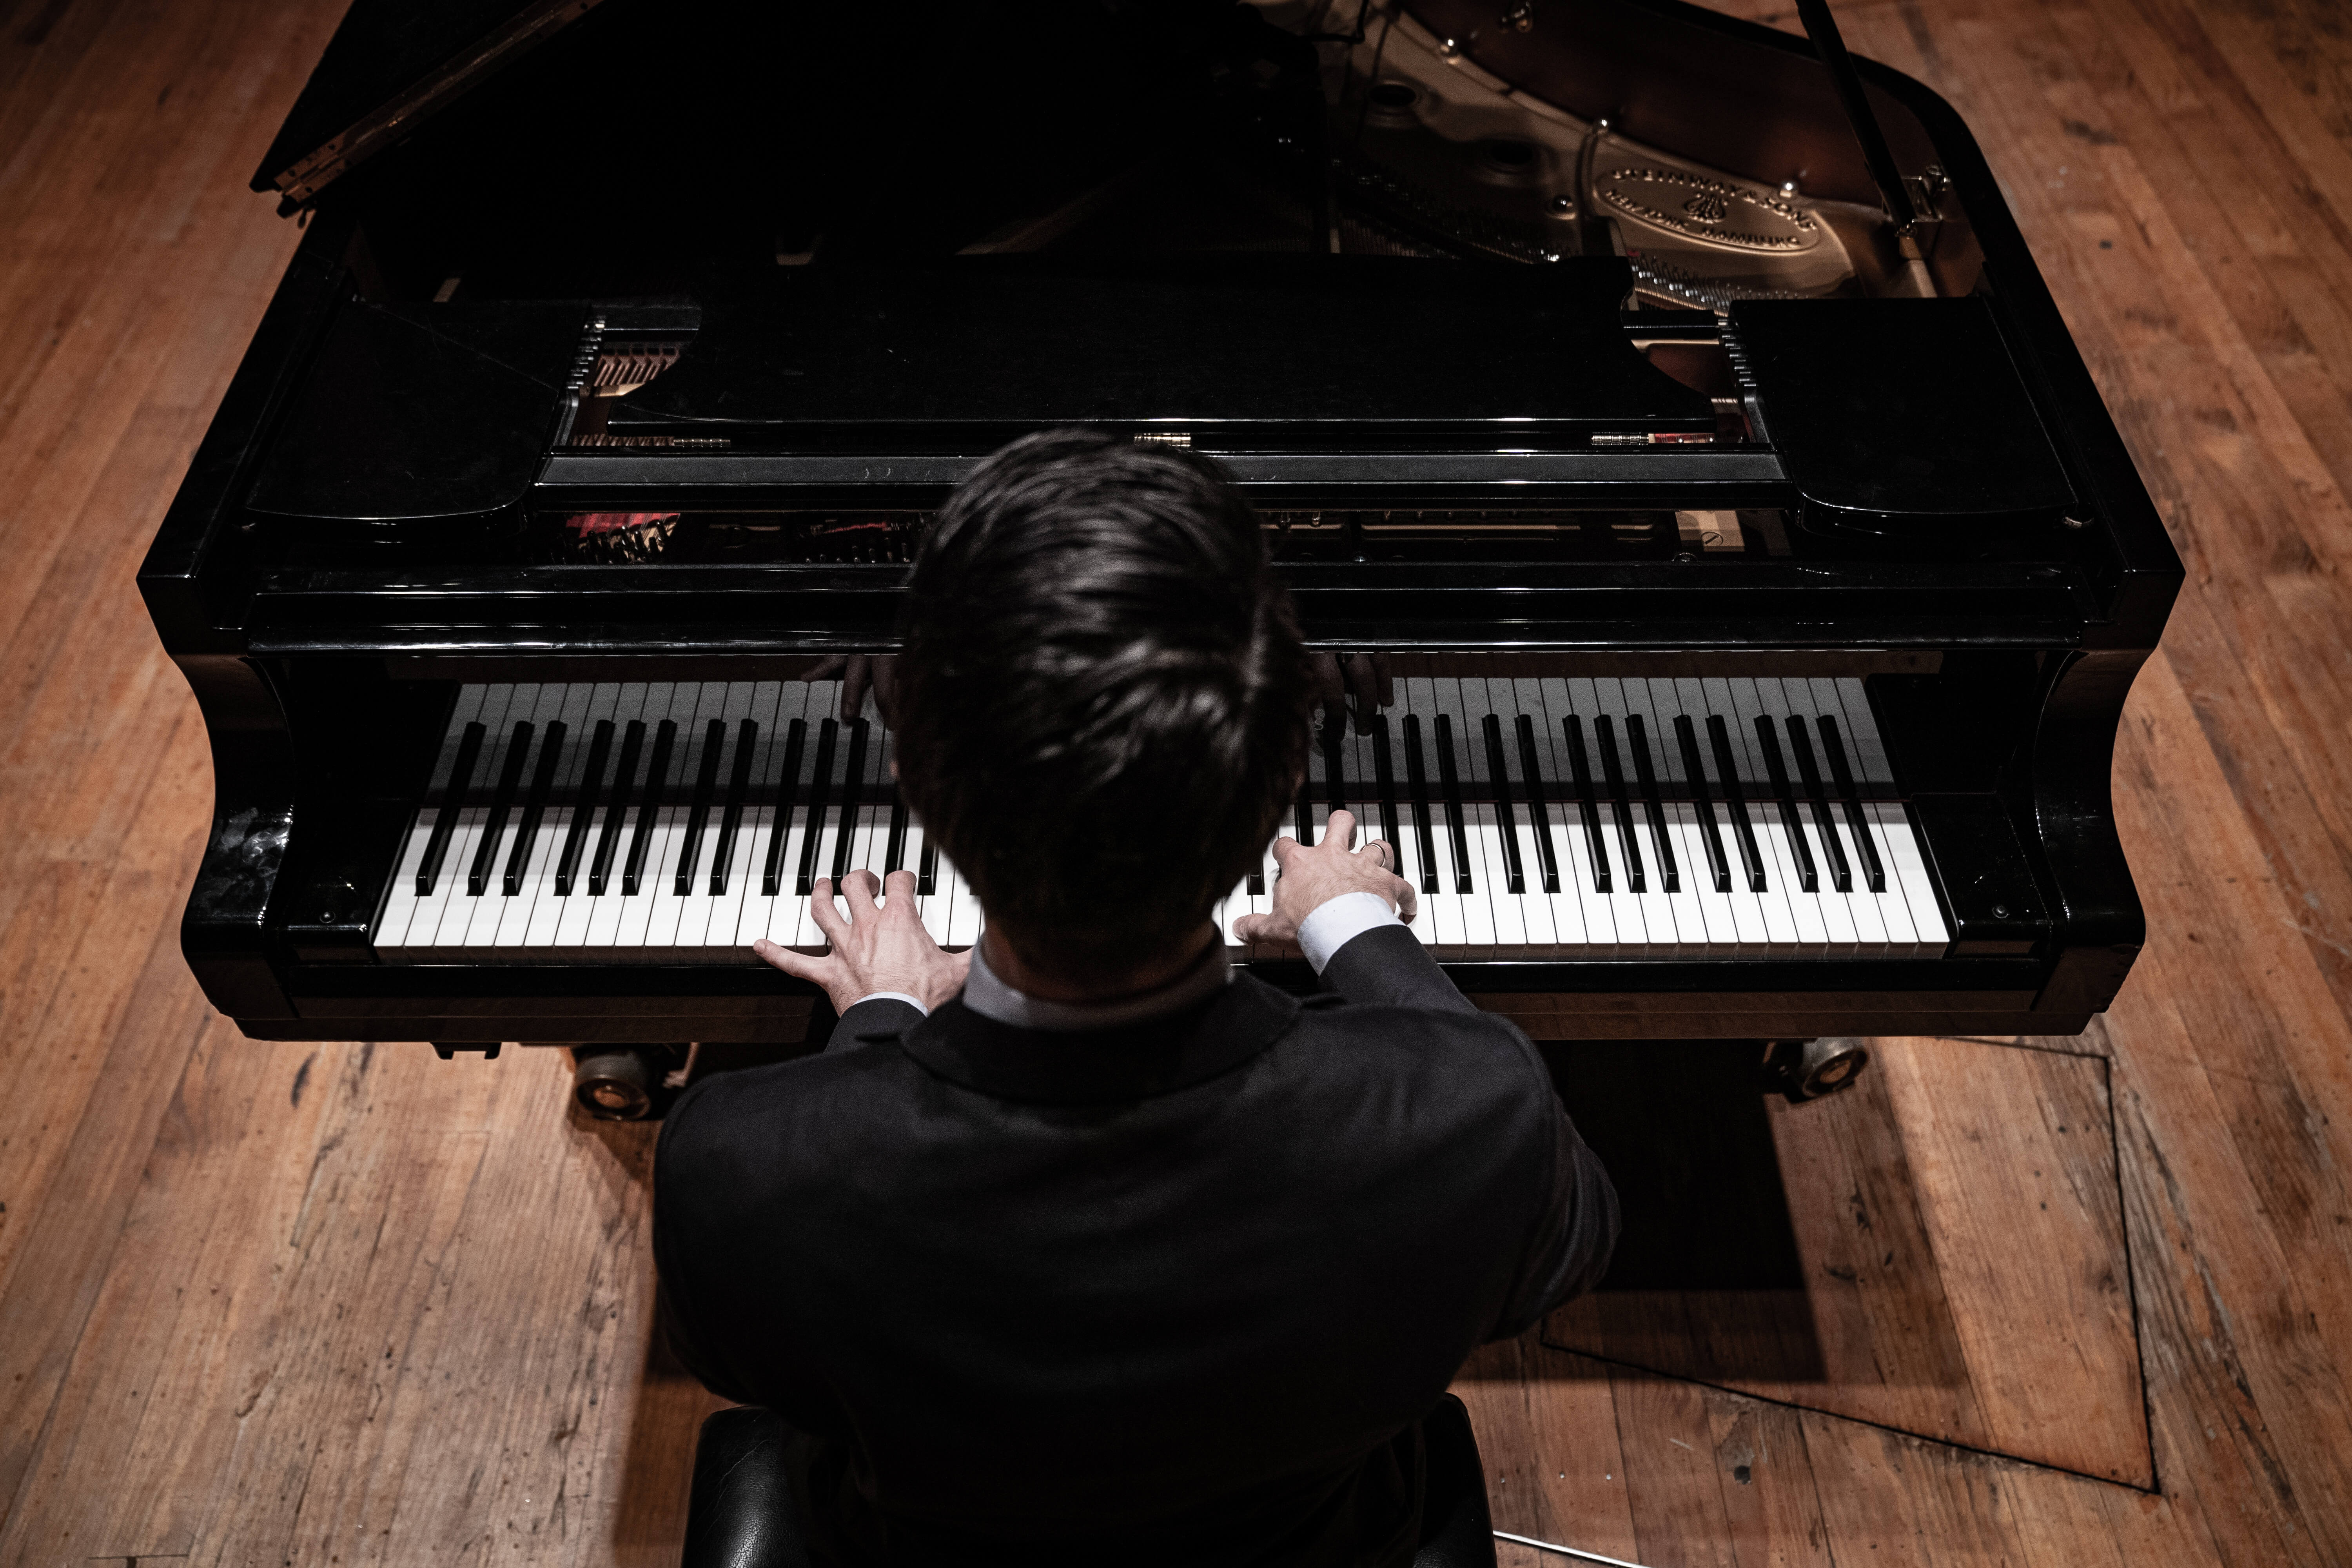 Pianist from above playing a Steinway grand piano.